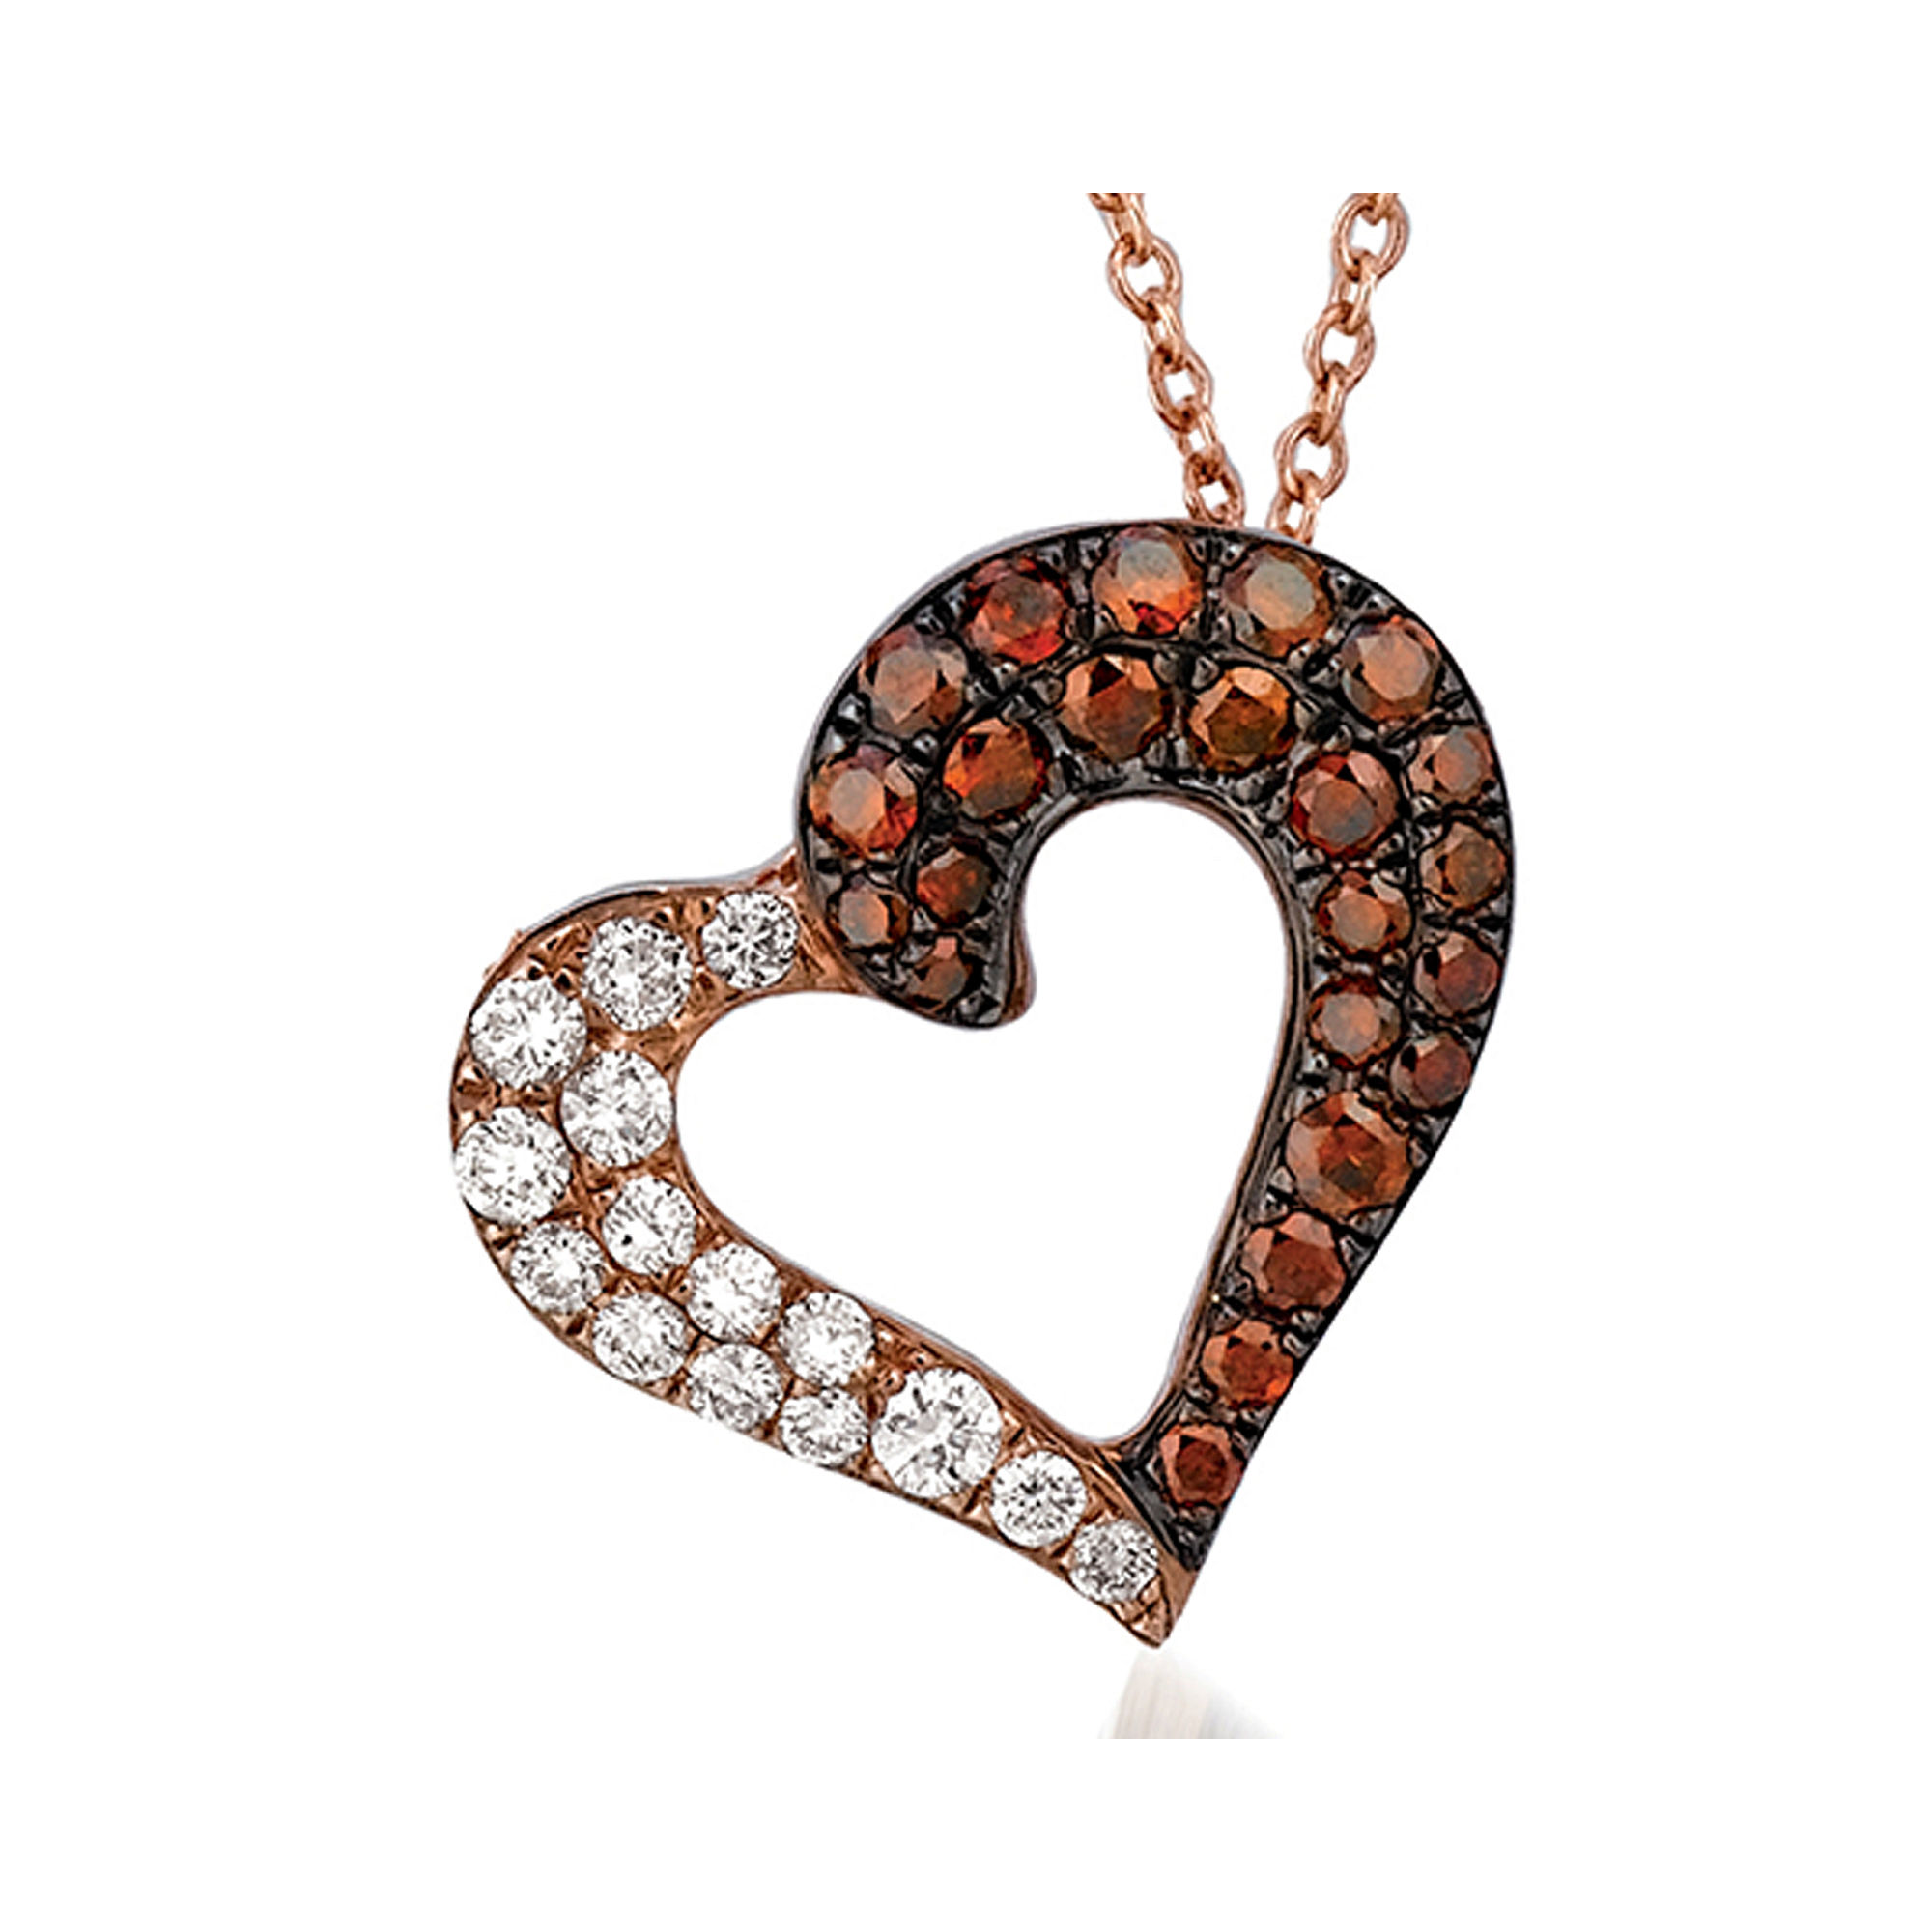 "LIMITED QUANTITIES Grand Sample Sale"" by Le Vian 3/8 CT. T.W Vanilla Diamonds & Cherryberry Diamonds"" 14K Strawberry Gold Le Vian Exotics Heart Penda"